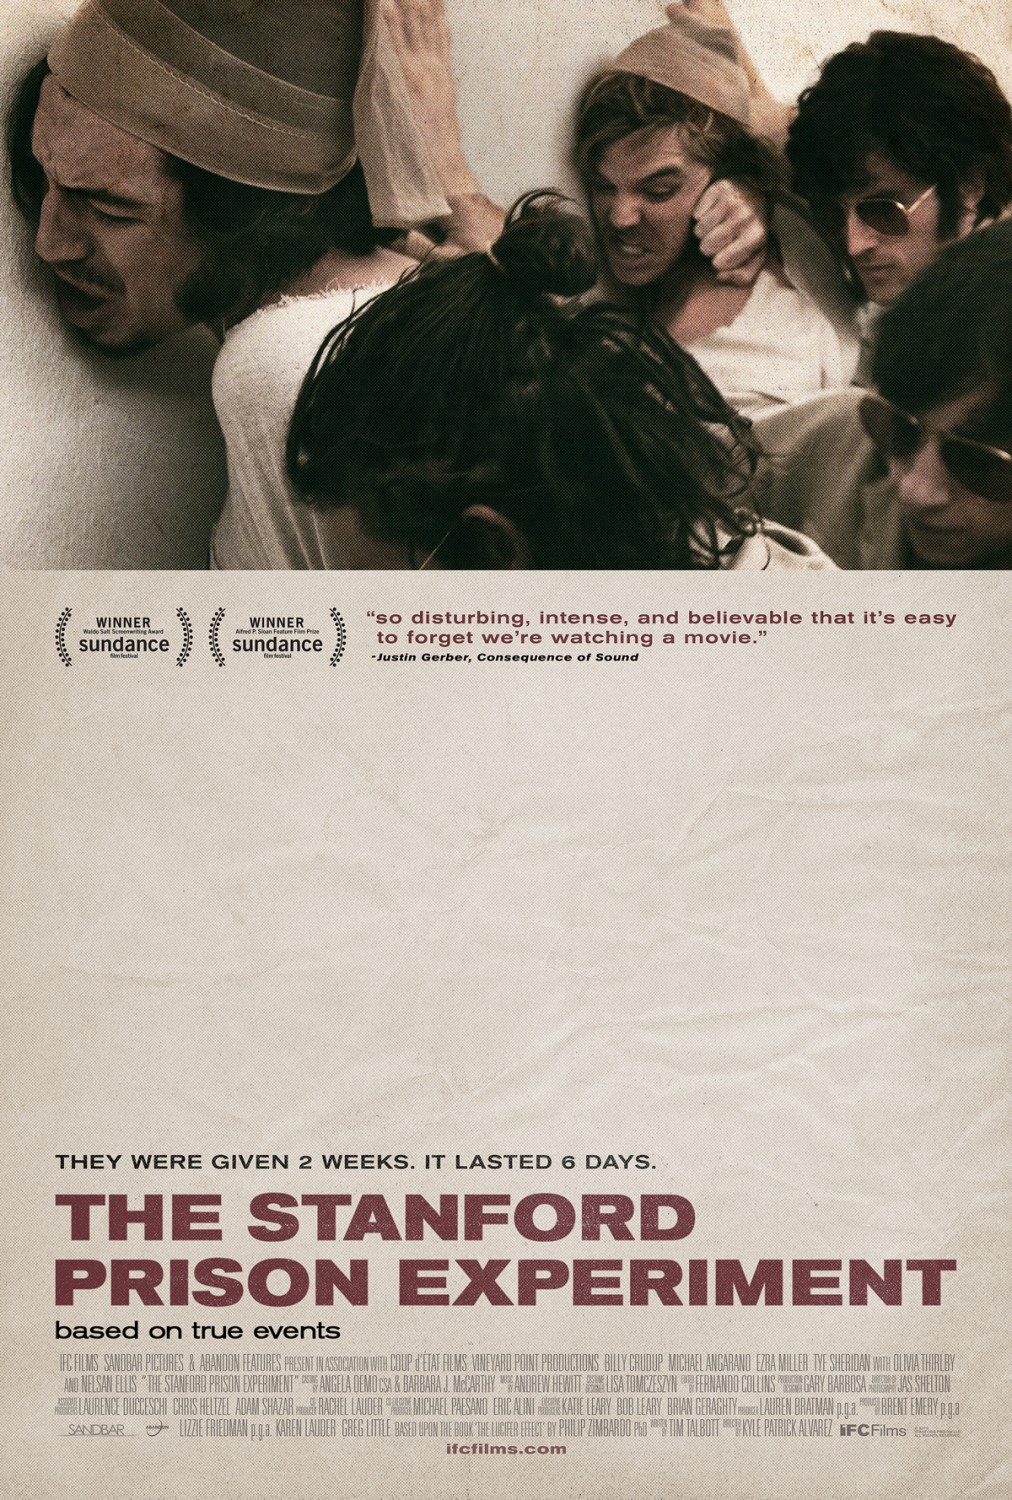 prison experiment The stanford prison experiment was a study of the psychological effects of becoming a prisoner or prison guard the experiment was conducted from august 14 to 20, 1971 by a team of researchers led by psychology professor philip zimbardo at stanford university it was funded by a grant from the us.